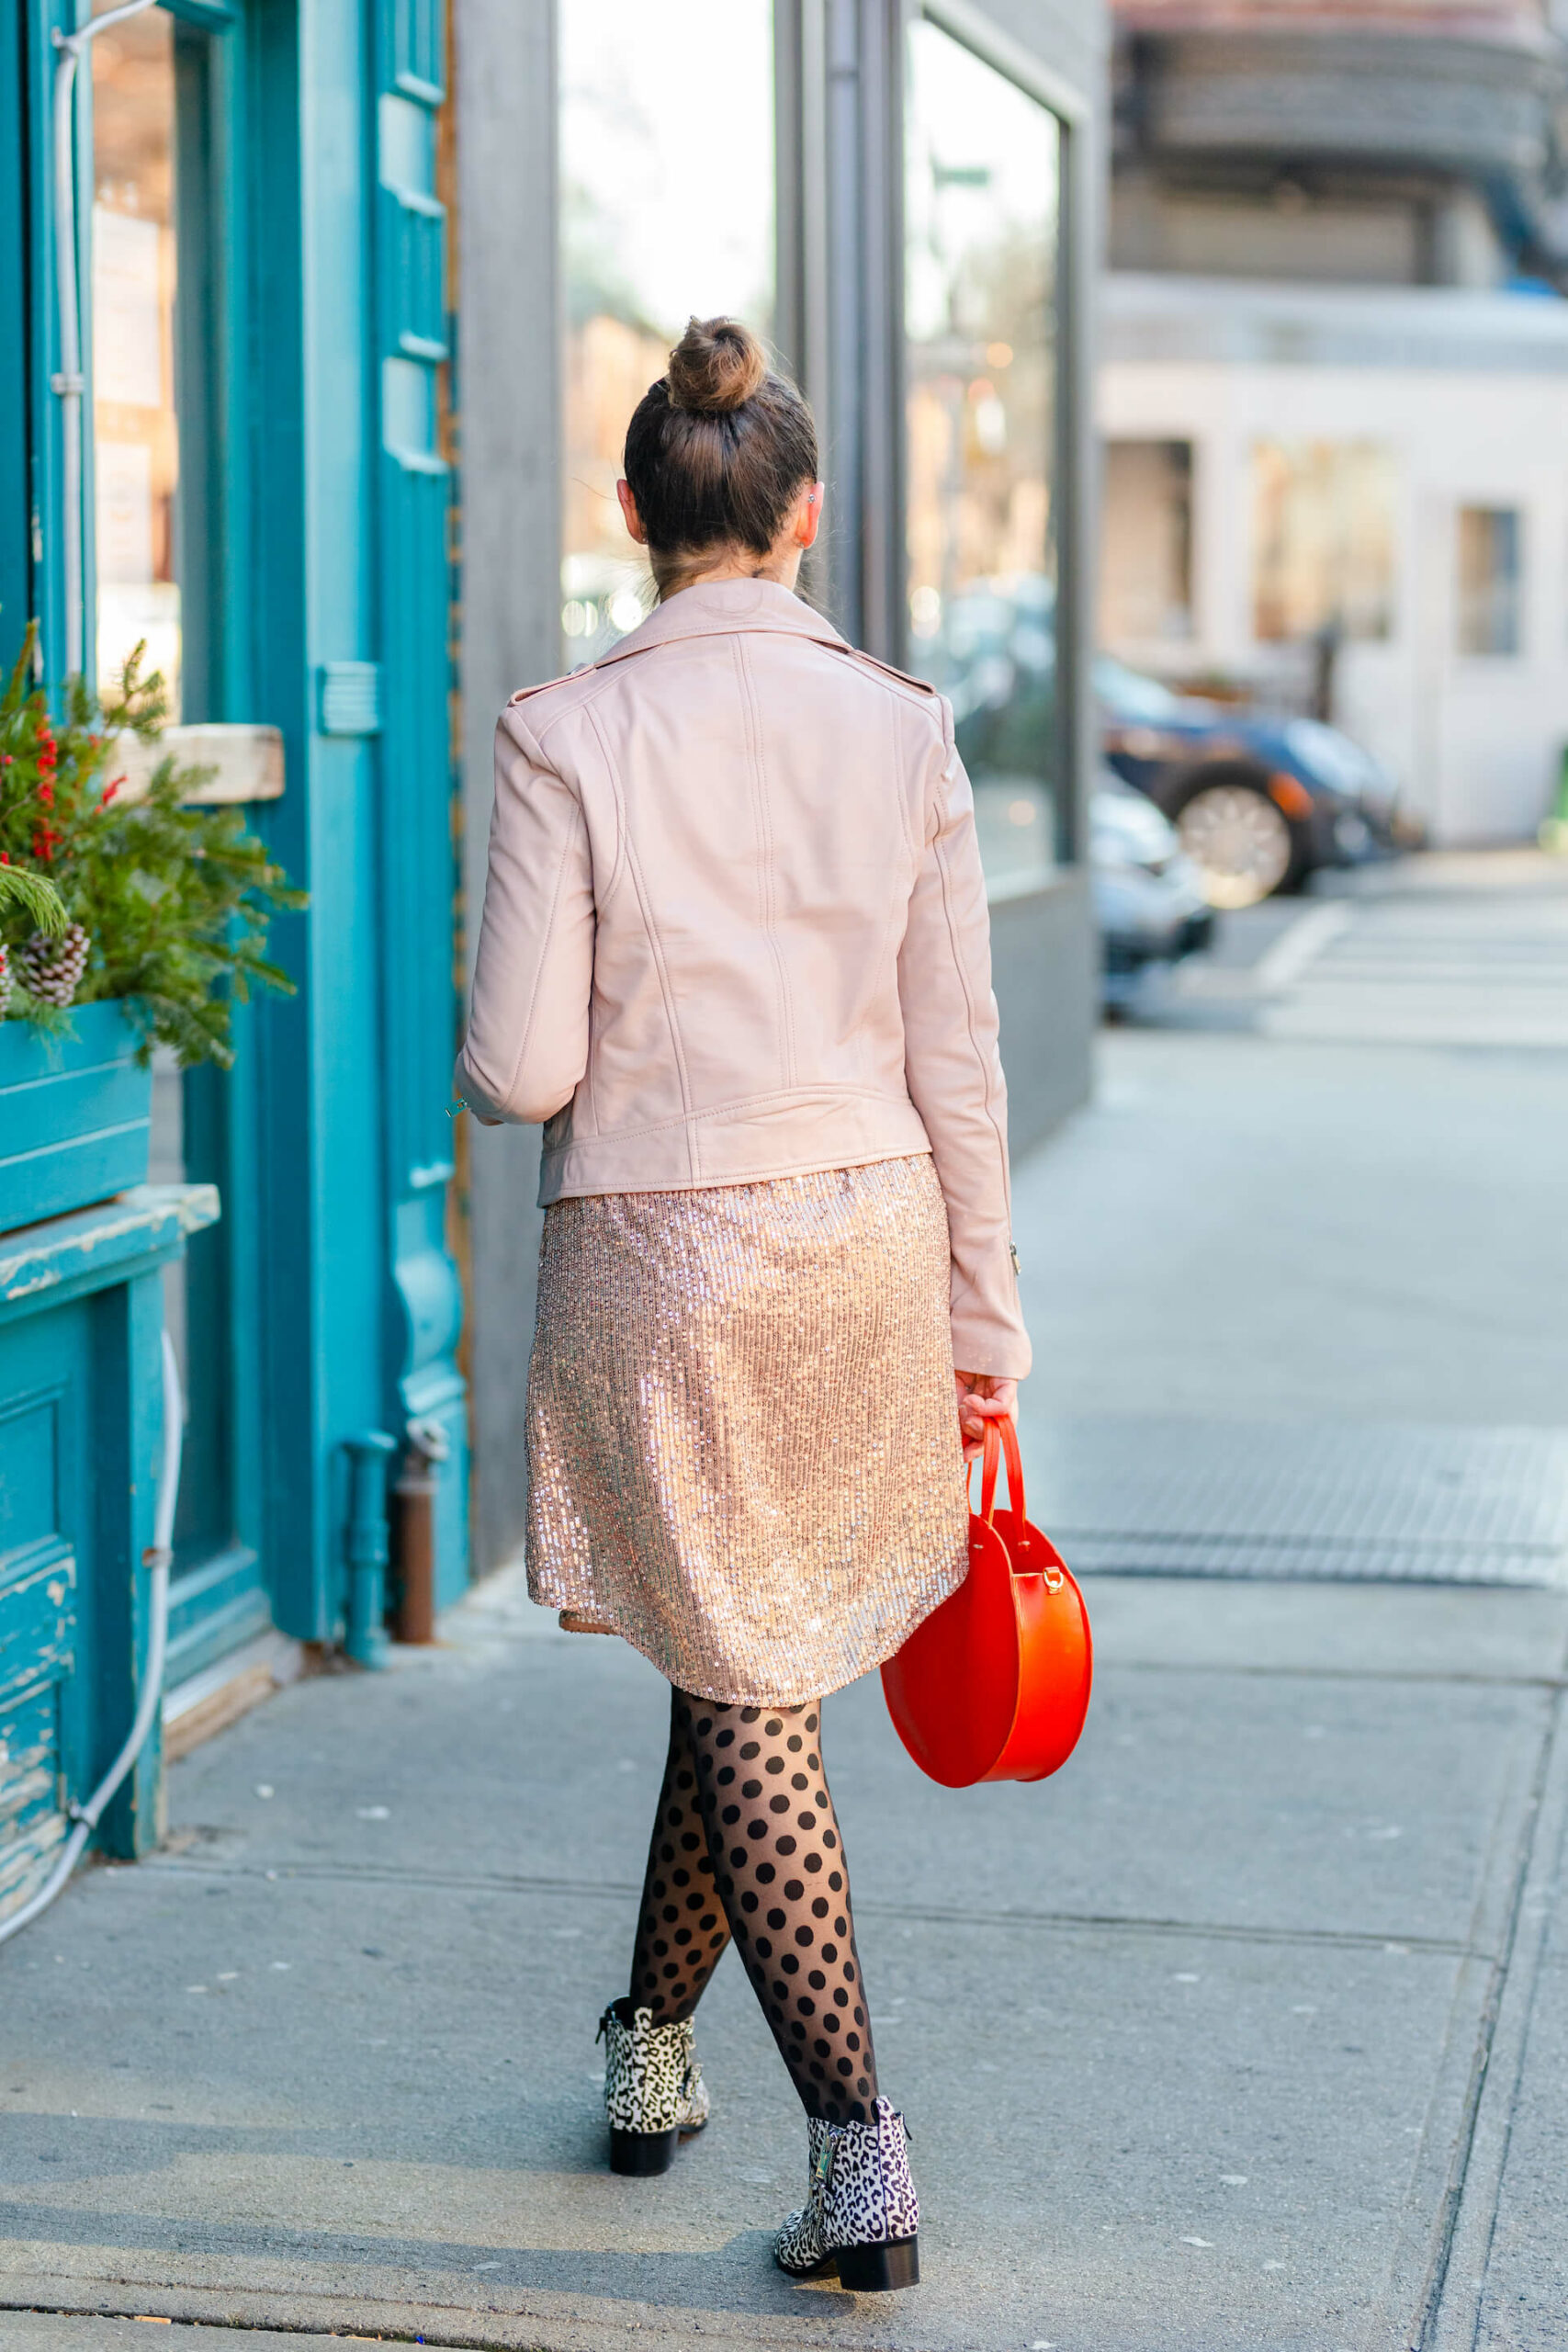 Anthro Sparkly Dress Lamarque Leather Jacket Mark Fisher Booties NYE Look by Modnitsa Styling